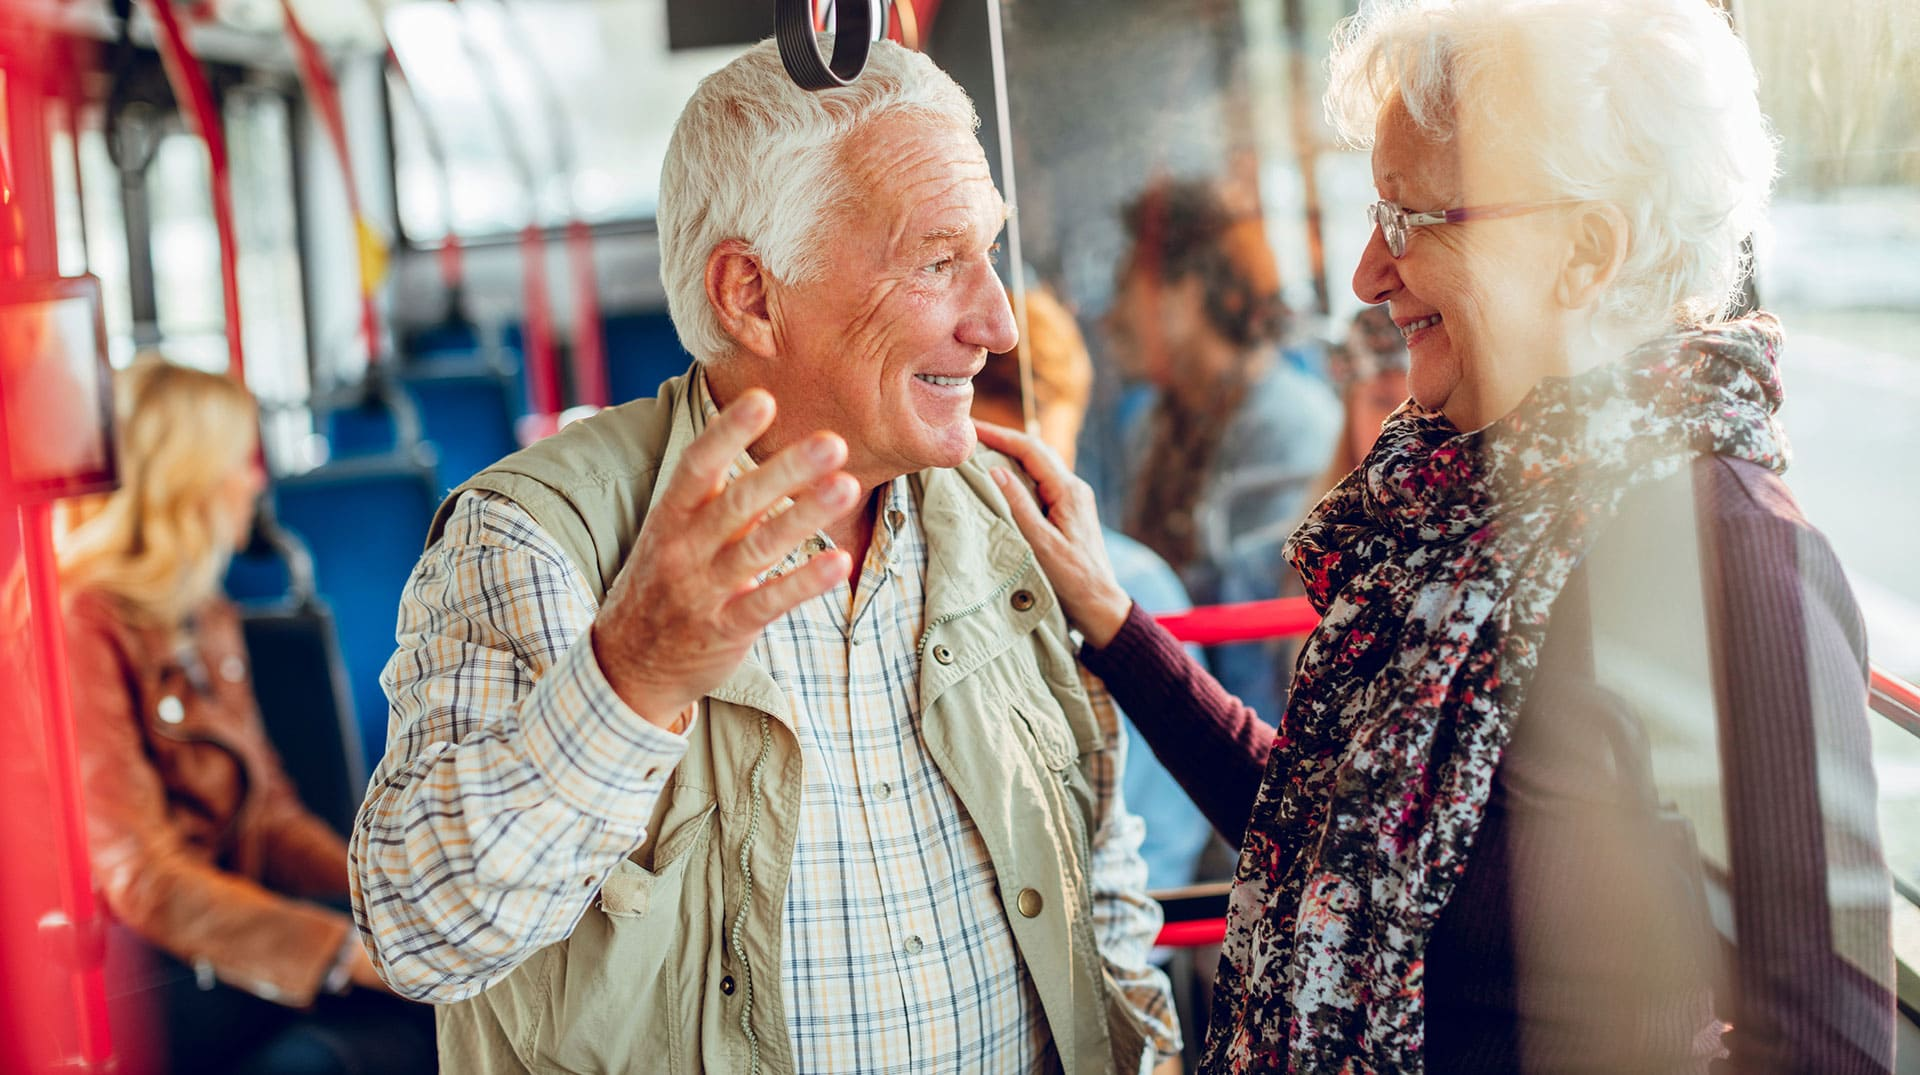 Photo of elderly couple on bus.